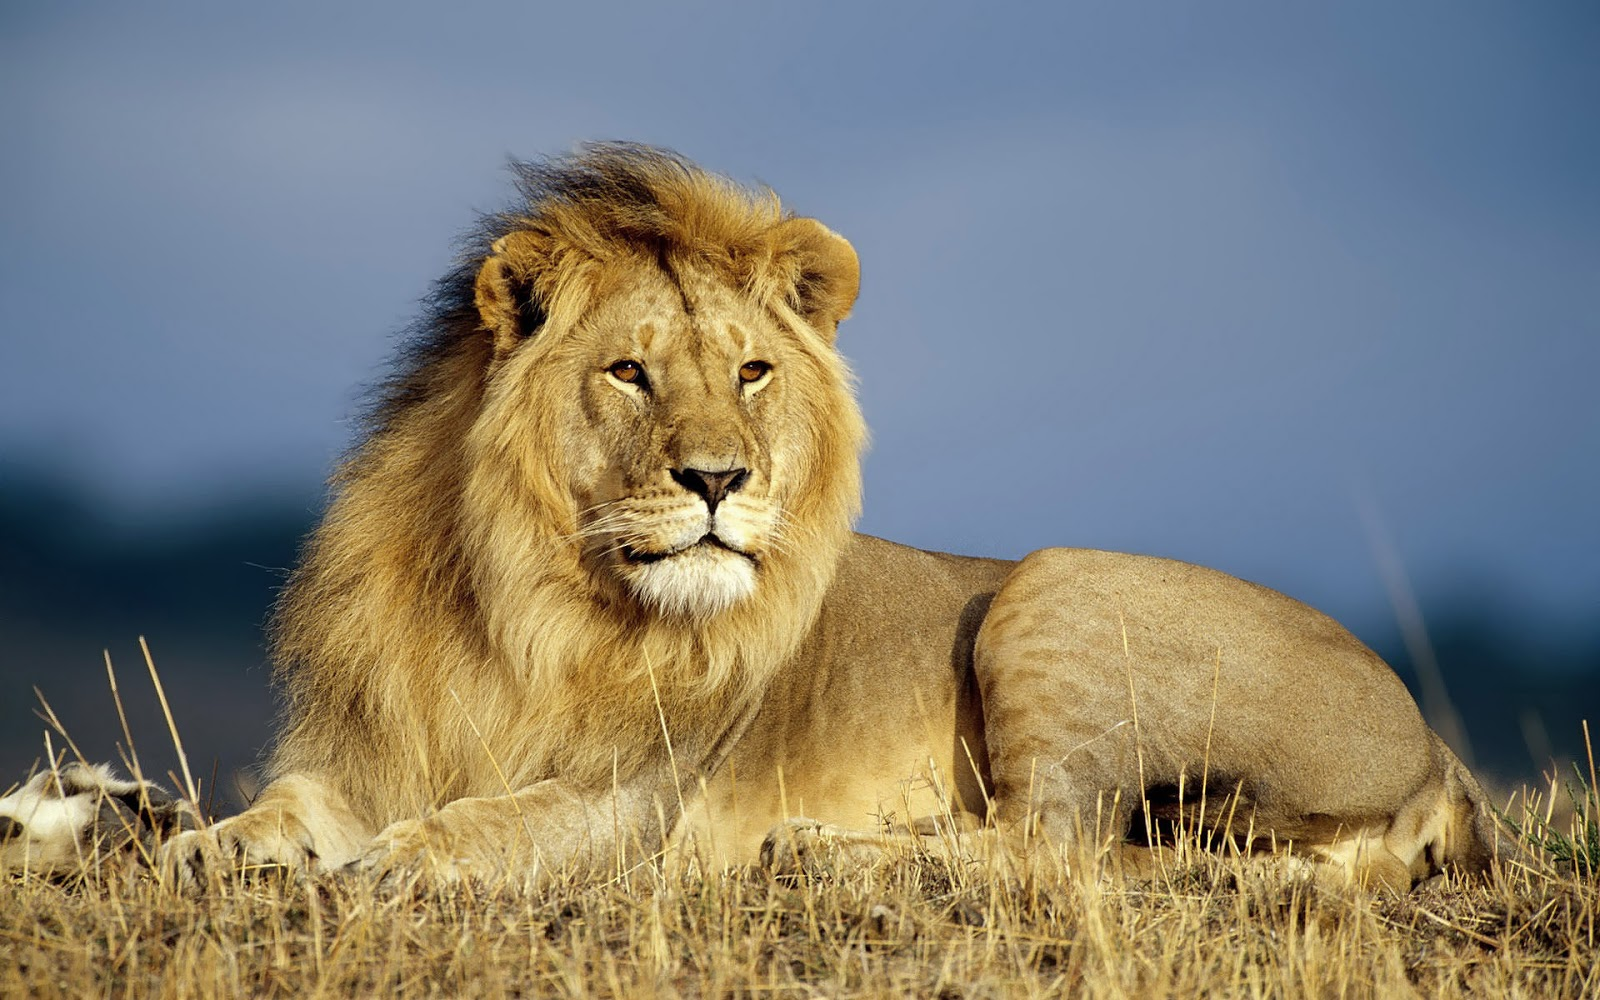 HD Lions Wallpapers and Photos | HD Animals Wallpapers